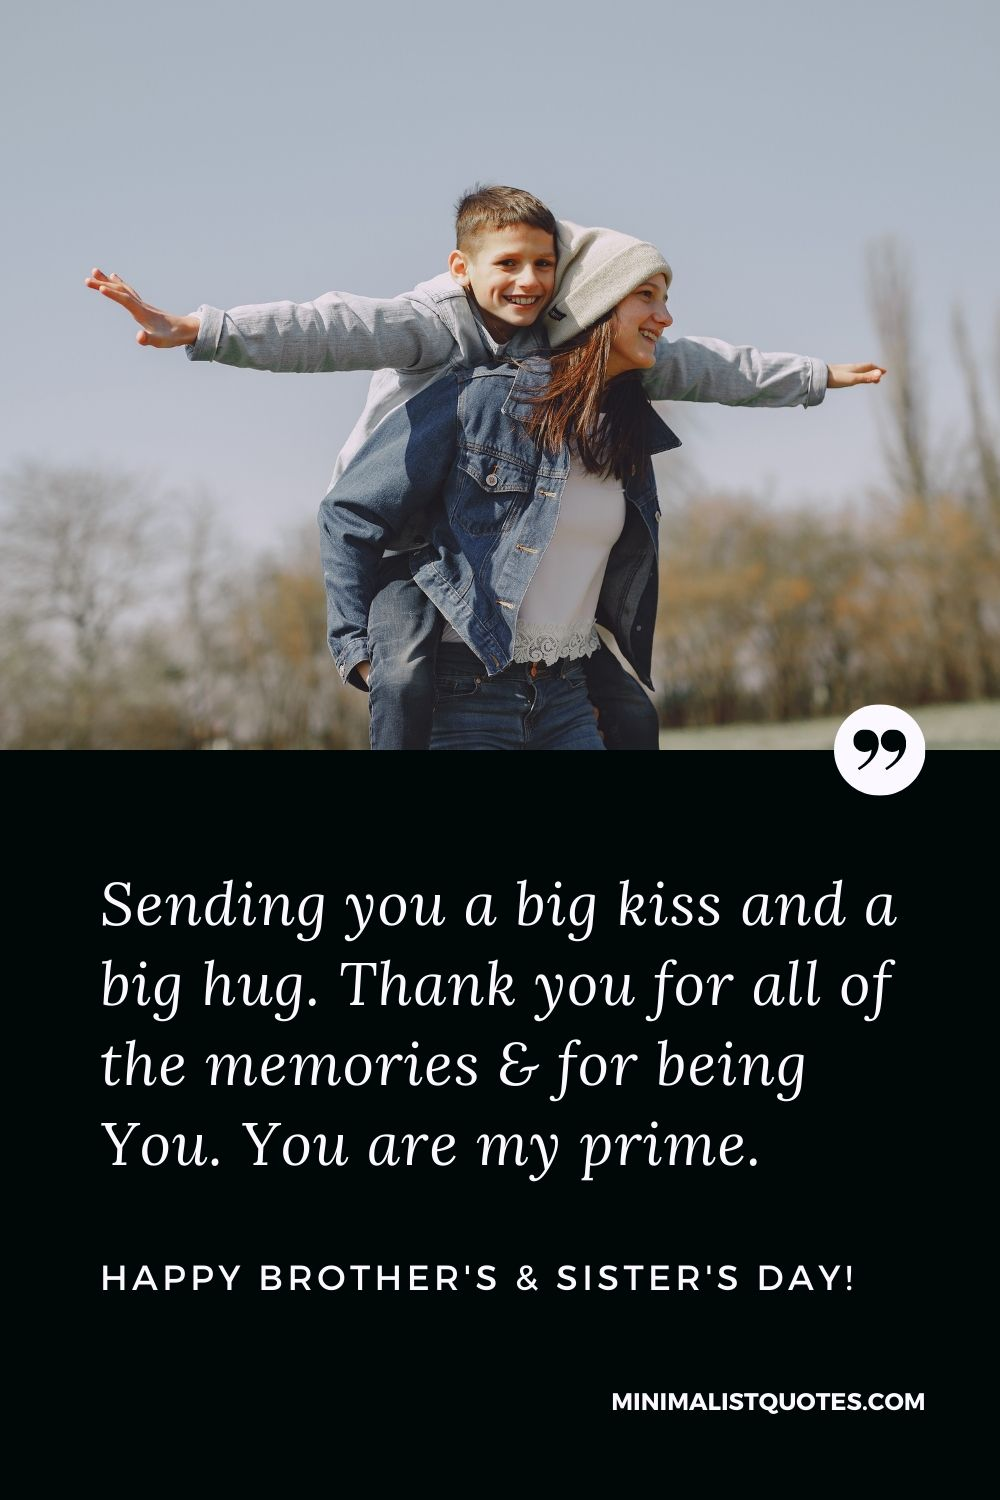 Brother's And Sister's Day Quote, Wish & Message With Image: Sending you a big kiss and a big hug. Thank you for all of the memories & for being You. You are my prime. Happy Brother's And Sister's Day!